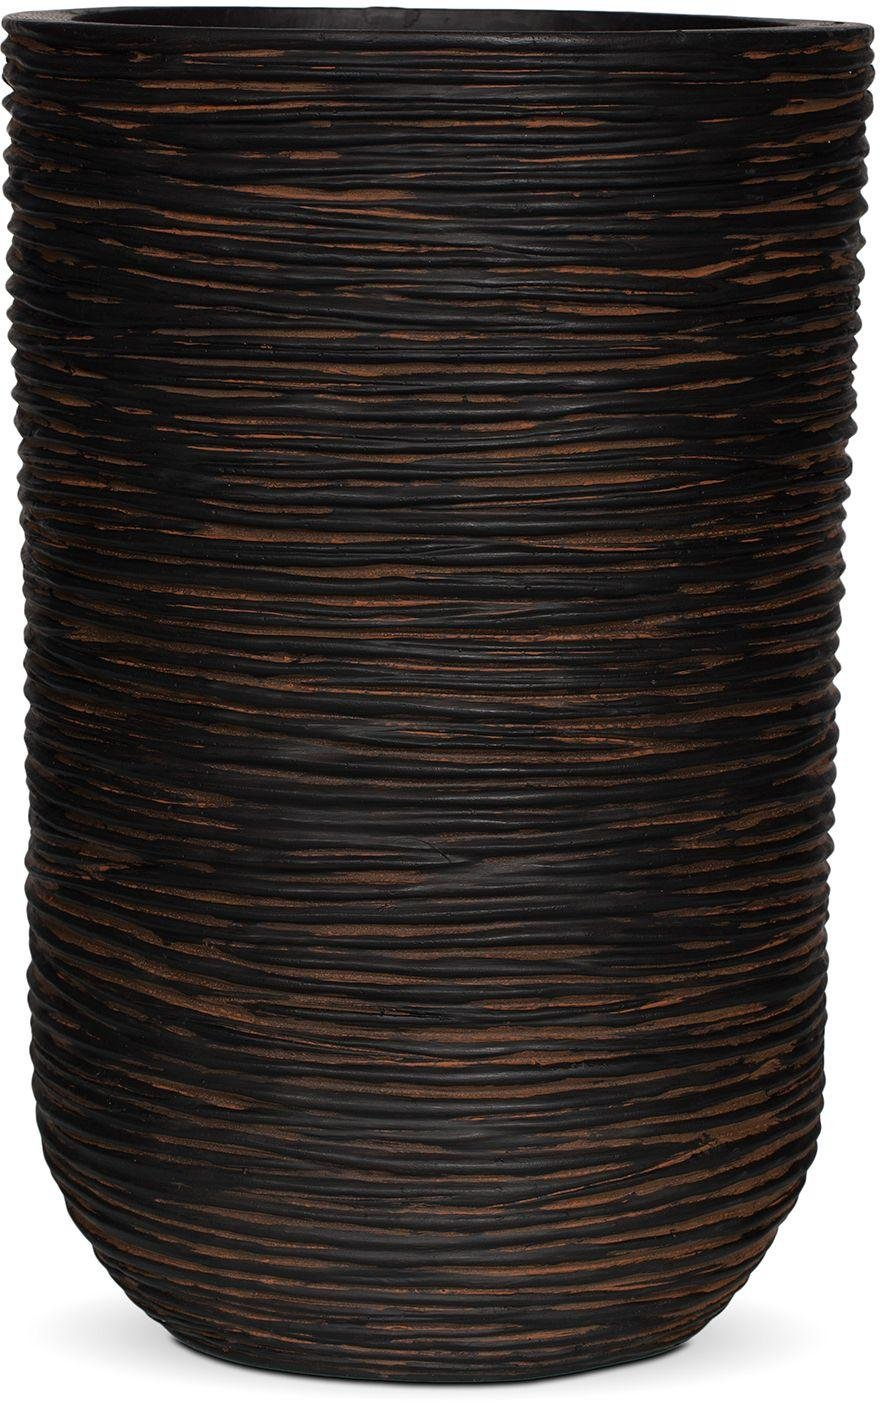 Image of Capi Nature Brown Ribbed Cylinder Planter - 25 x 38cm.